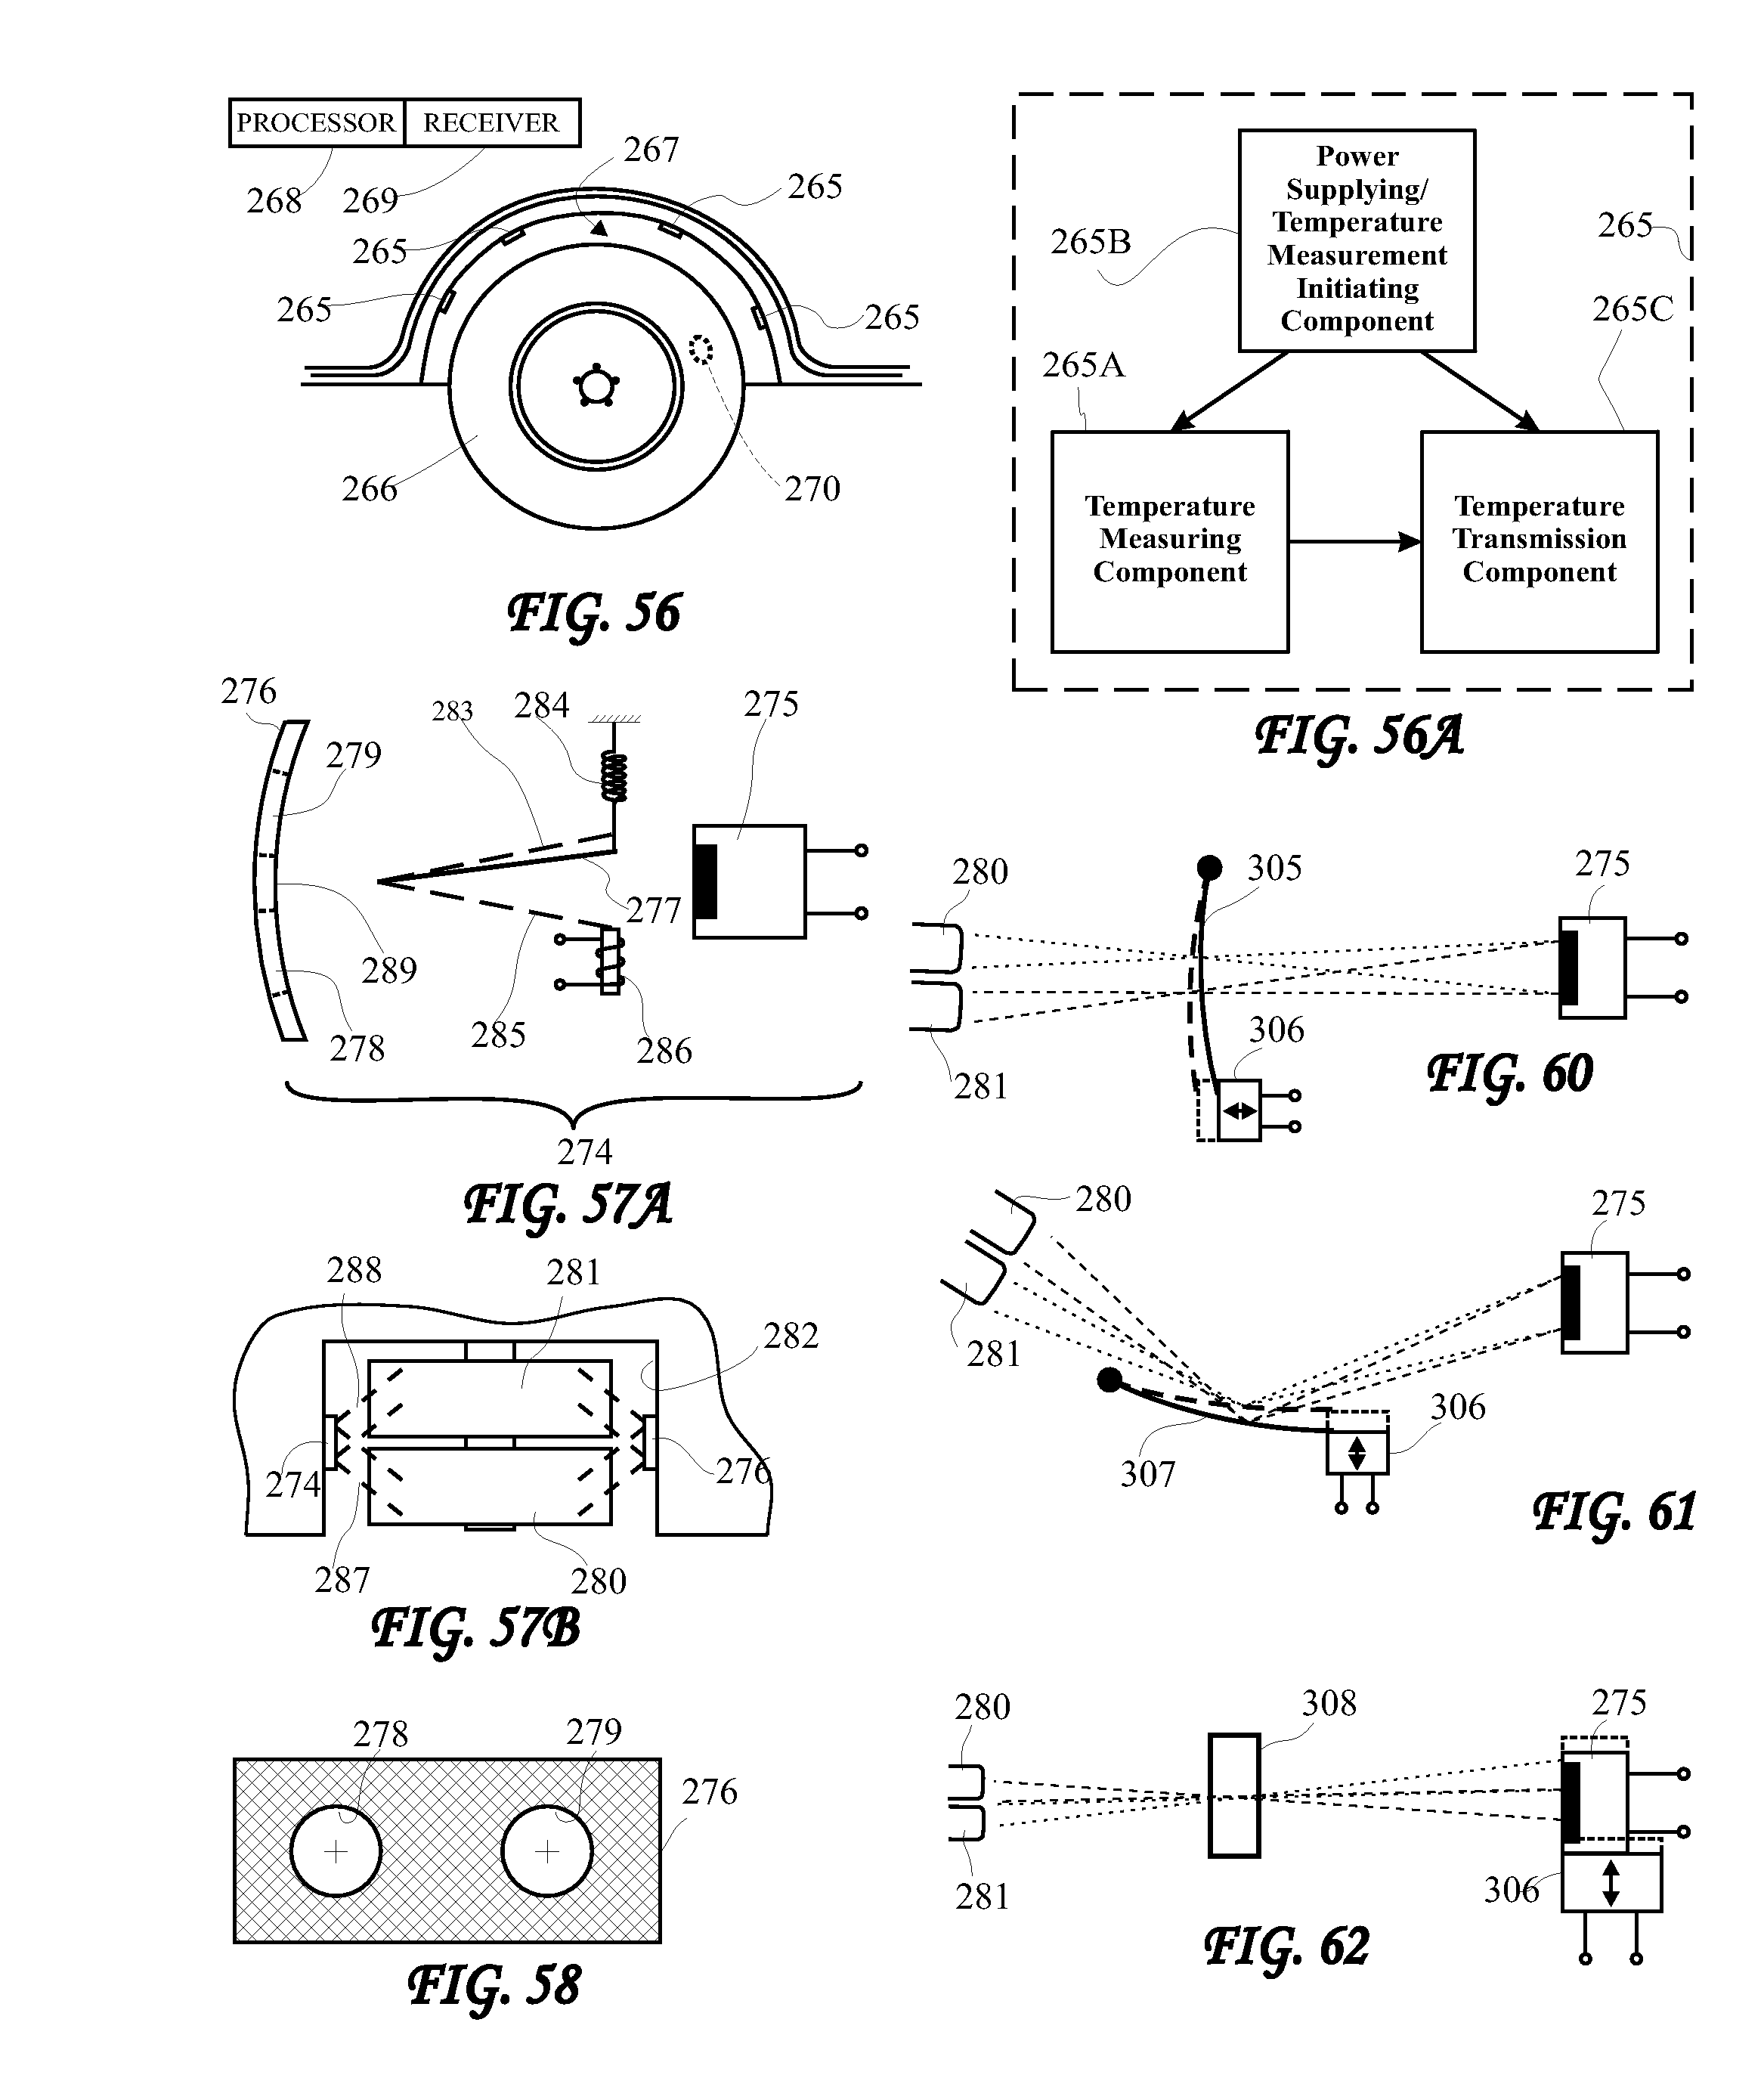 Patent Us 7313467 B2 High And Low Voltage Cutoff With Delay Alarm Circuit Diagram Images